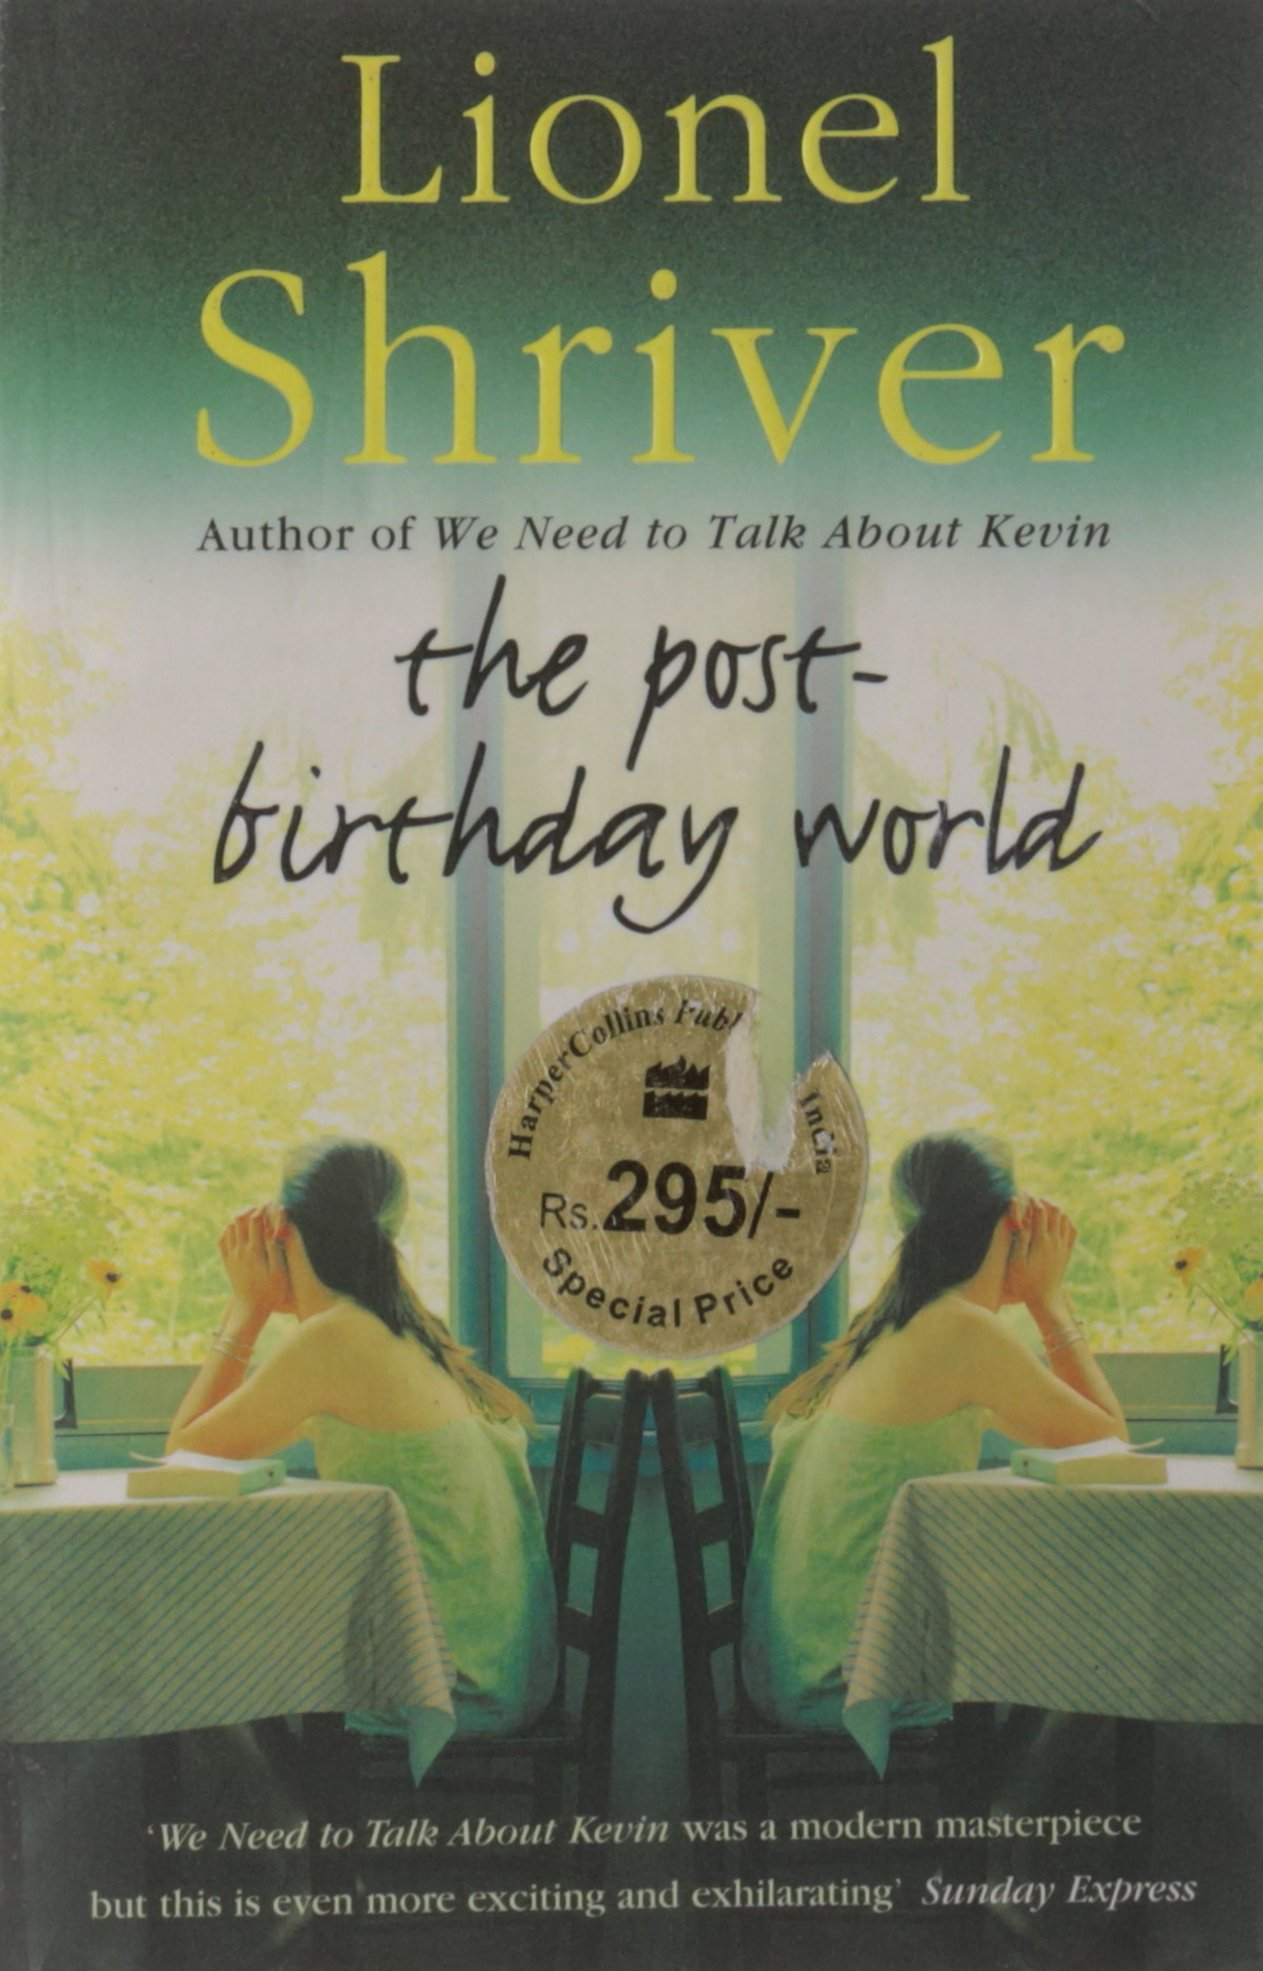 The Postbirthday World: Amazon: Lionel Shriver: 9780007245147: Books